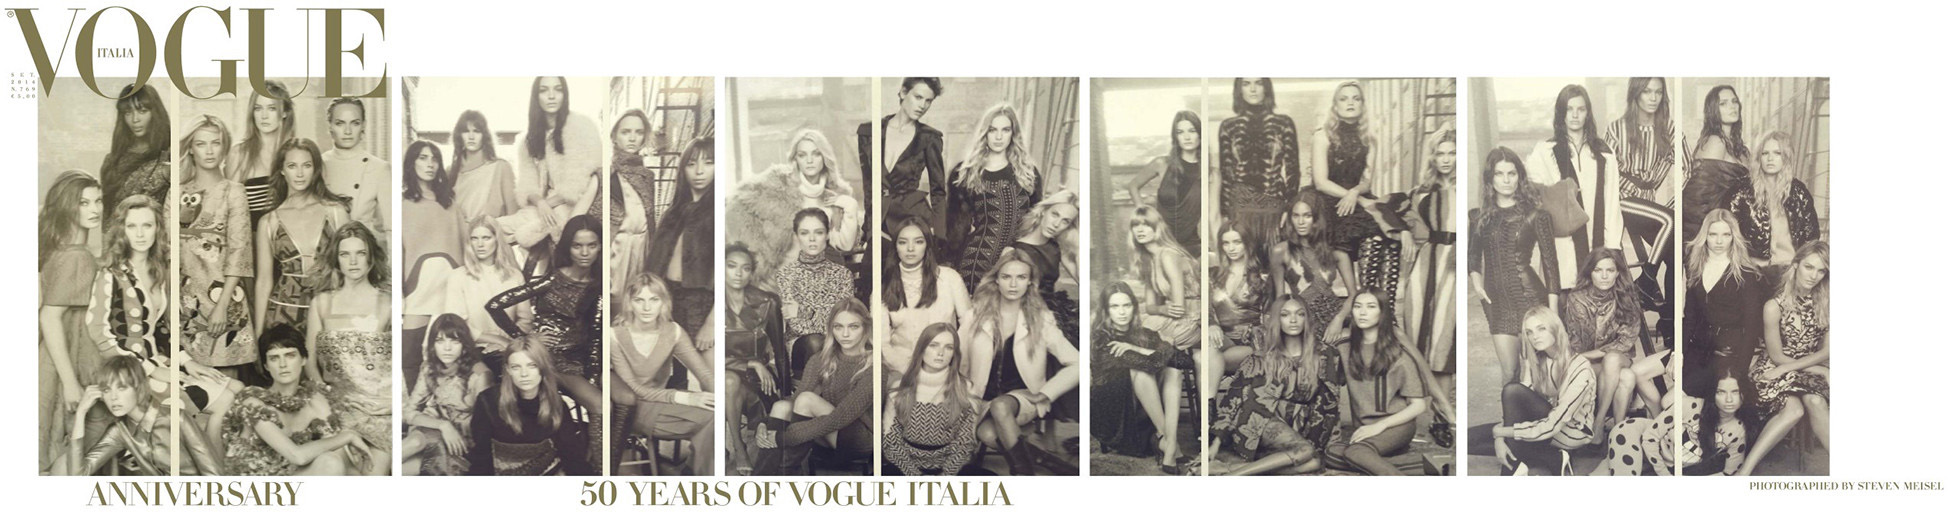 Vogue Italia is celebrating its 50th anniversary